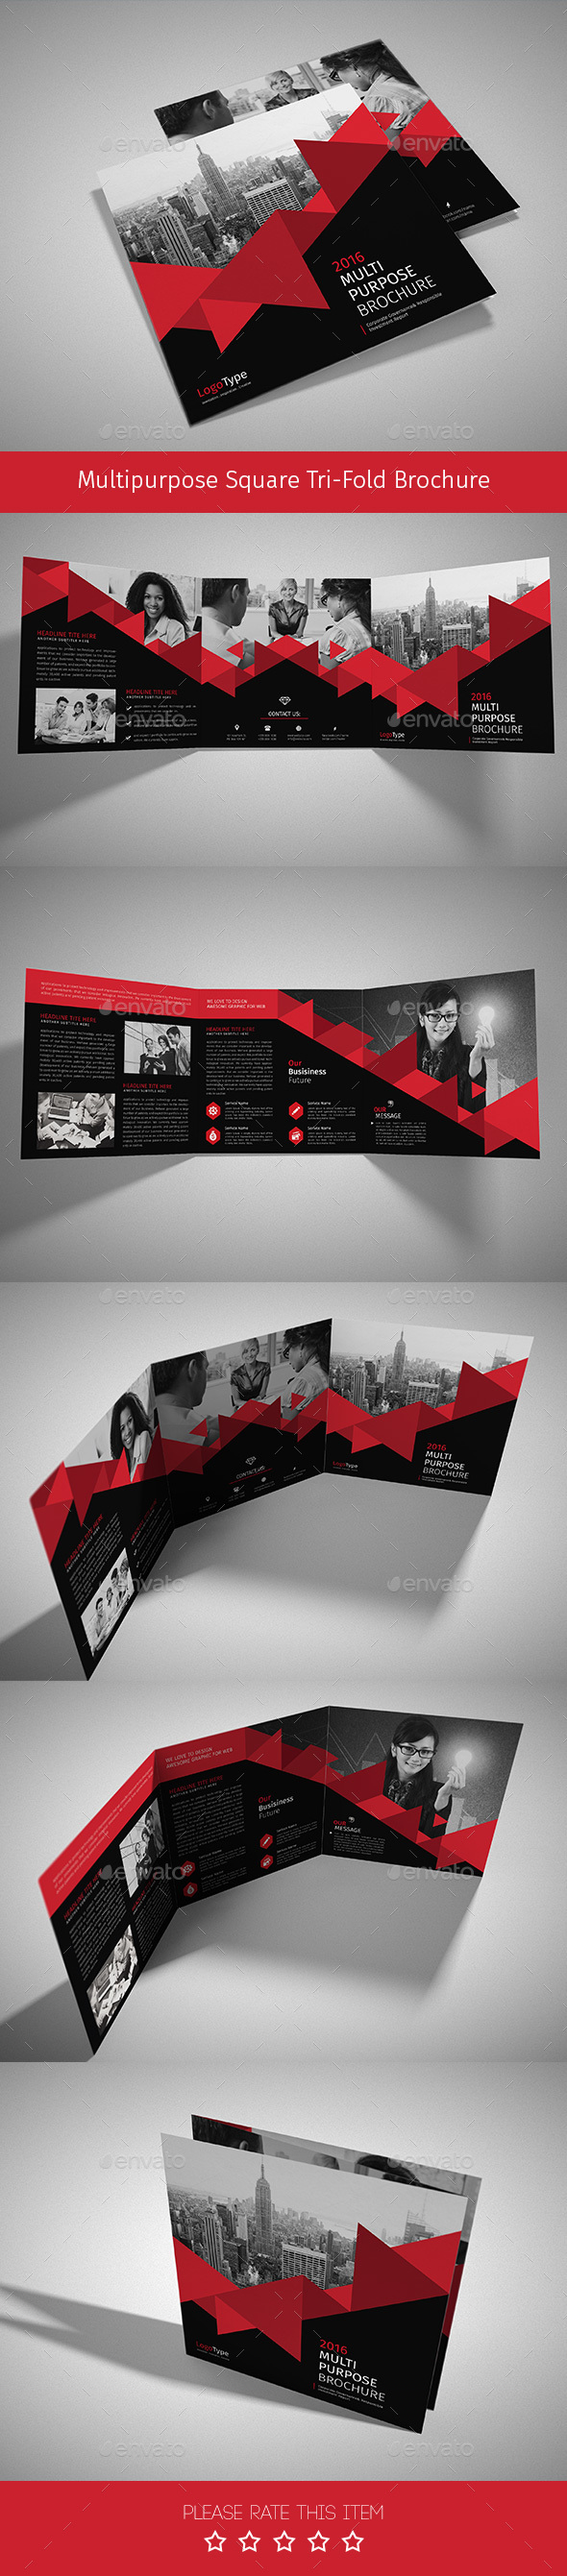 Corporate Tri-fold Square Brochure 01 - Corporate Brochures